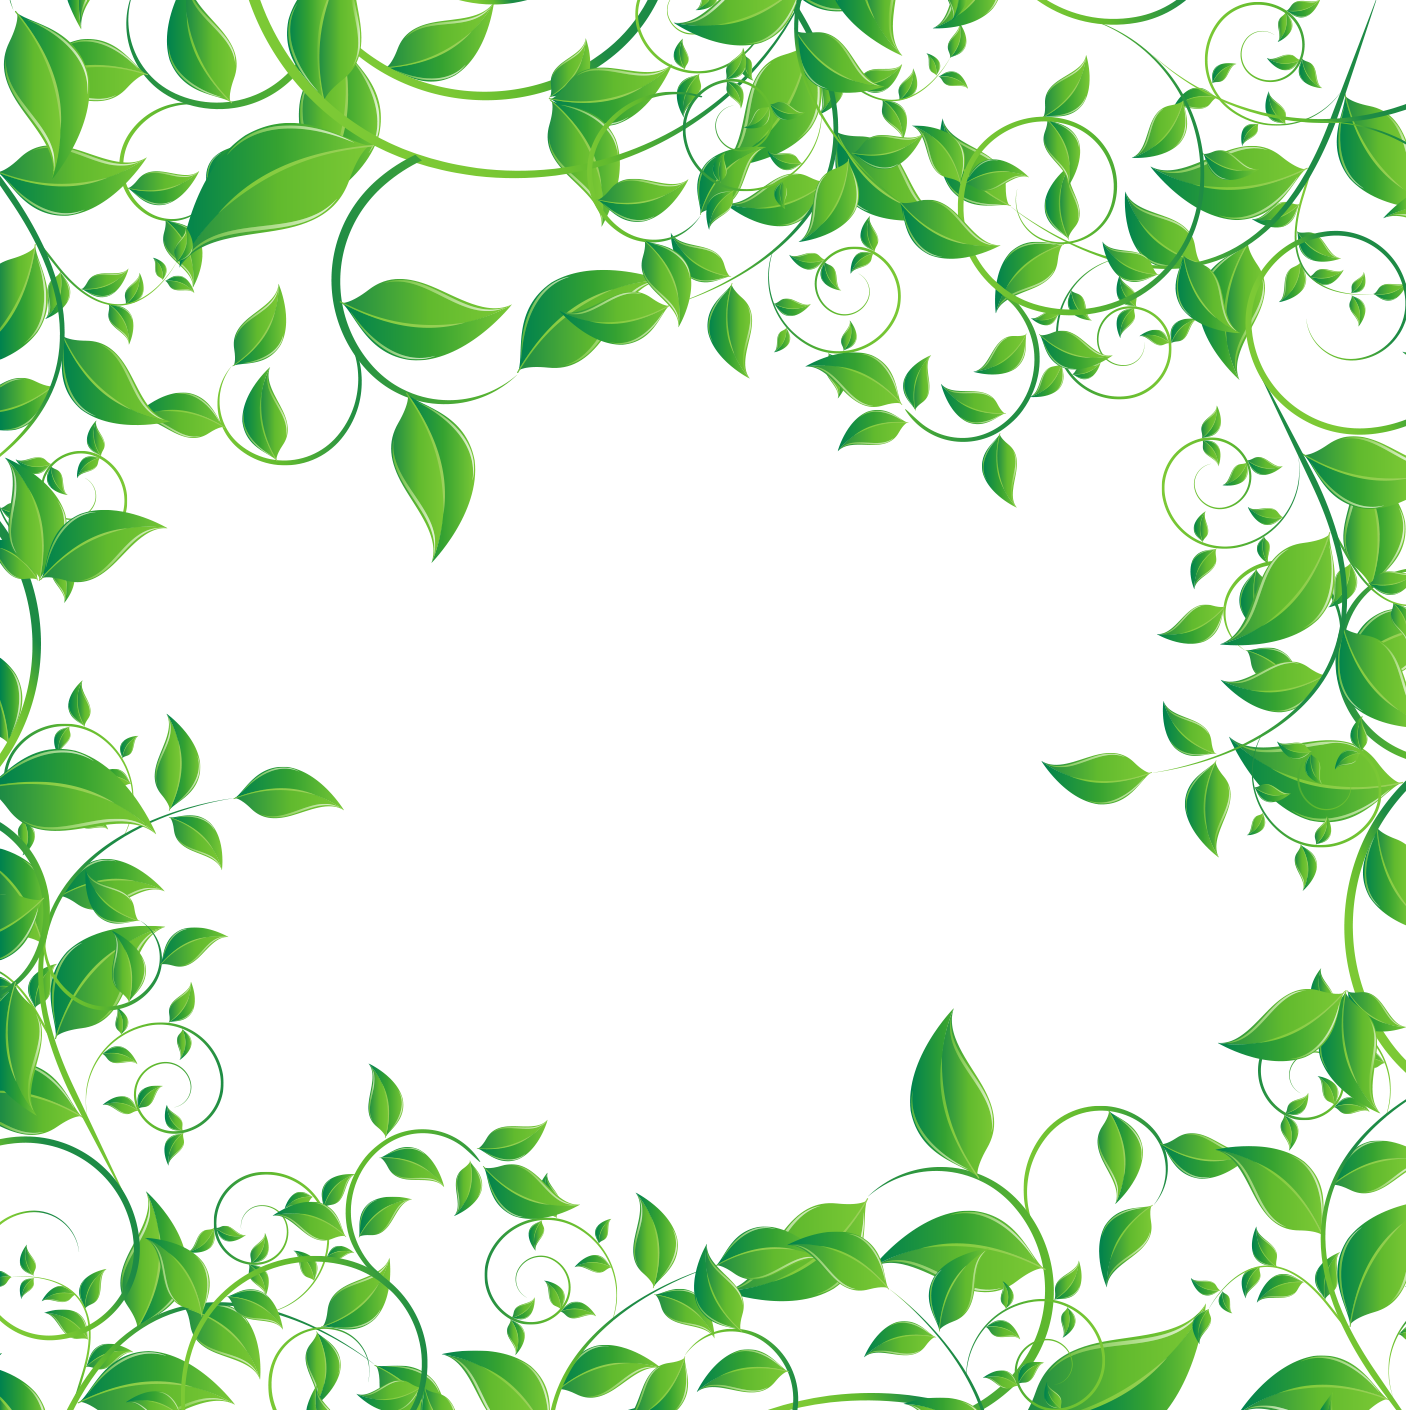 Tea computer file green. Greenery vector border banner black and white library